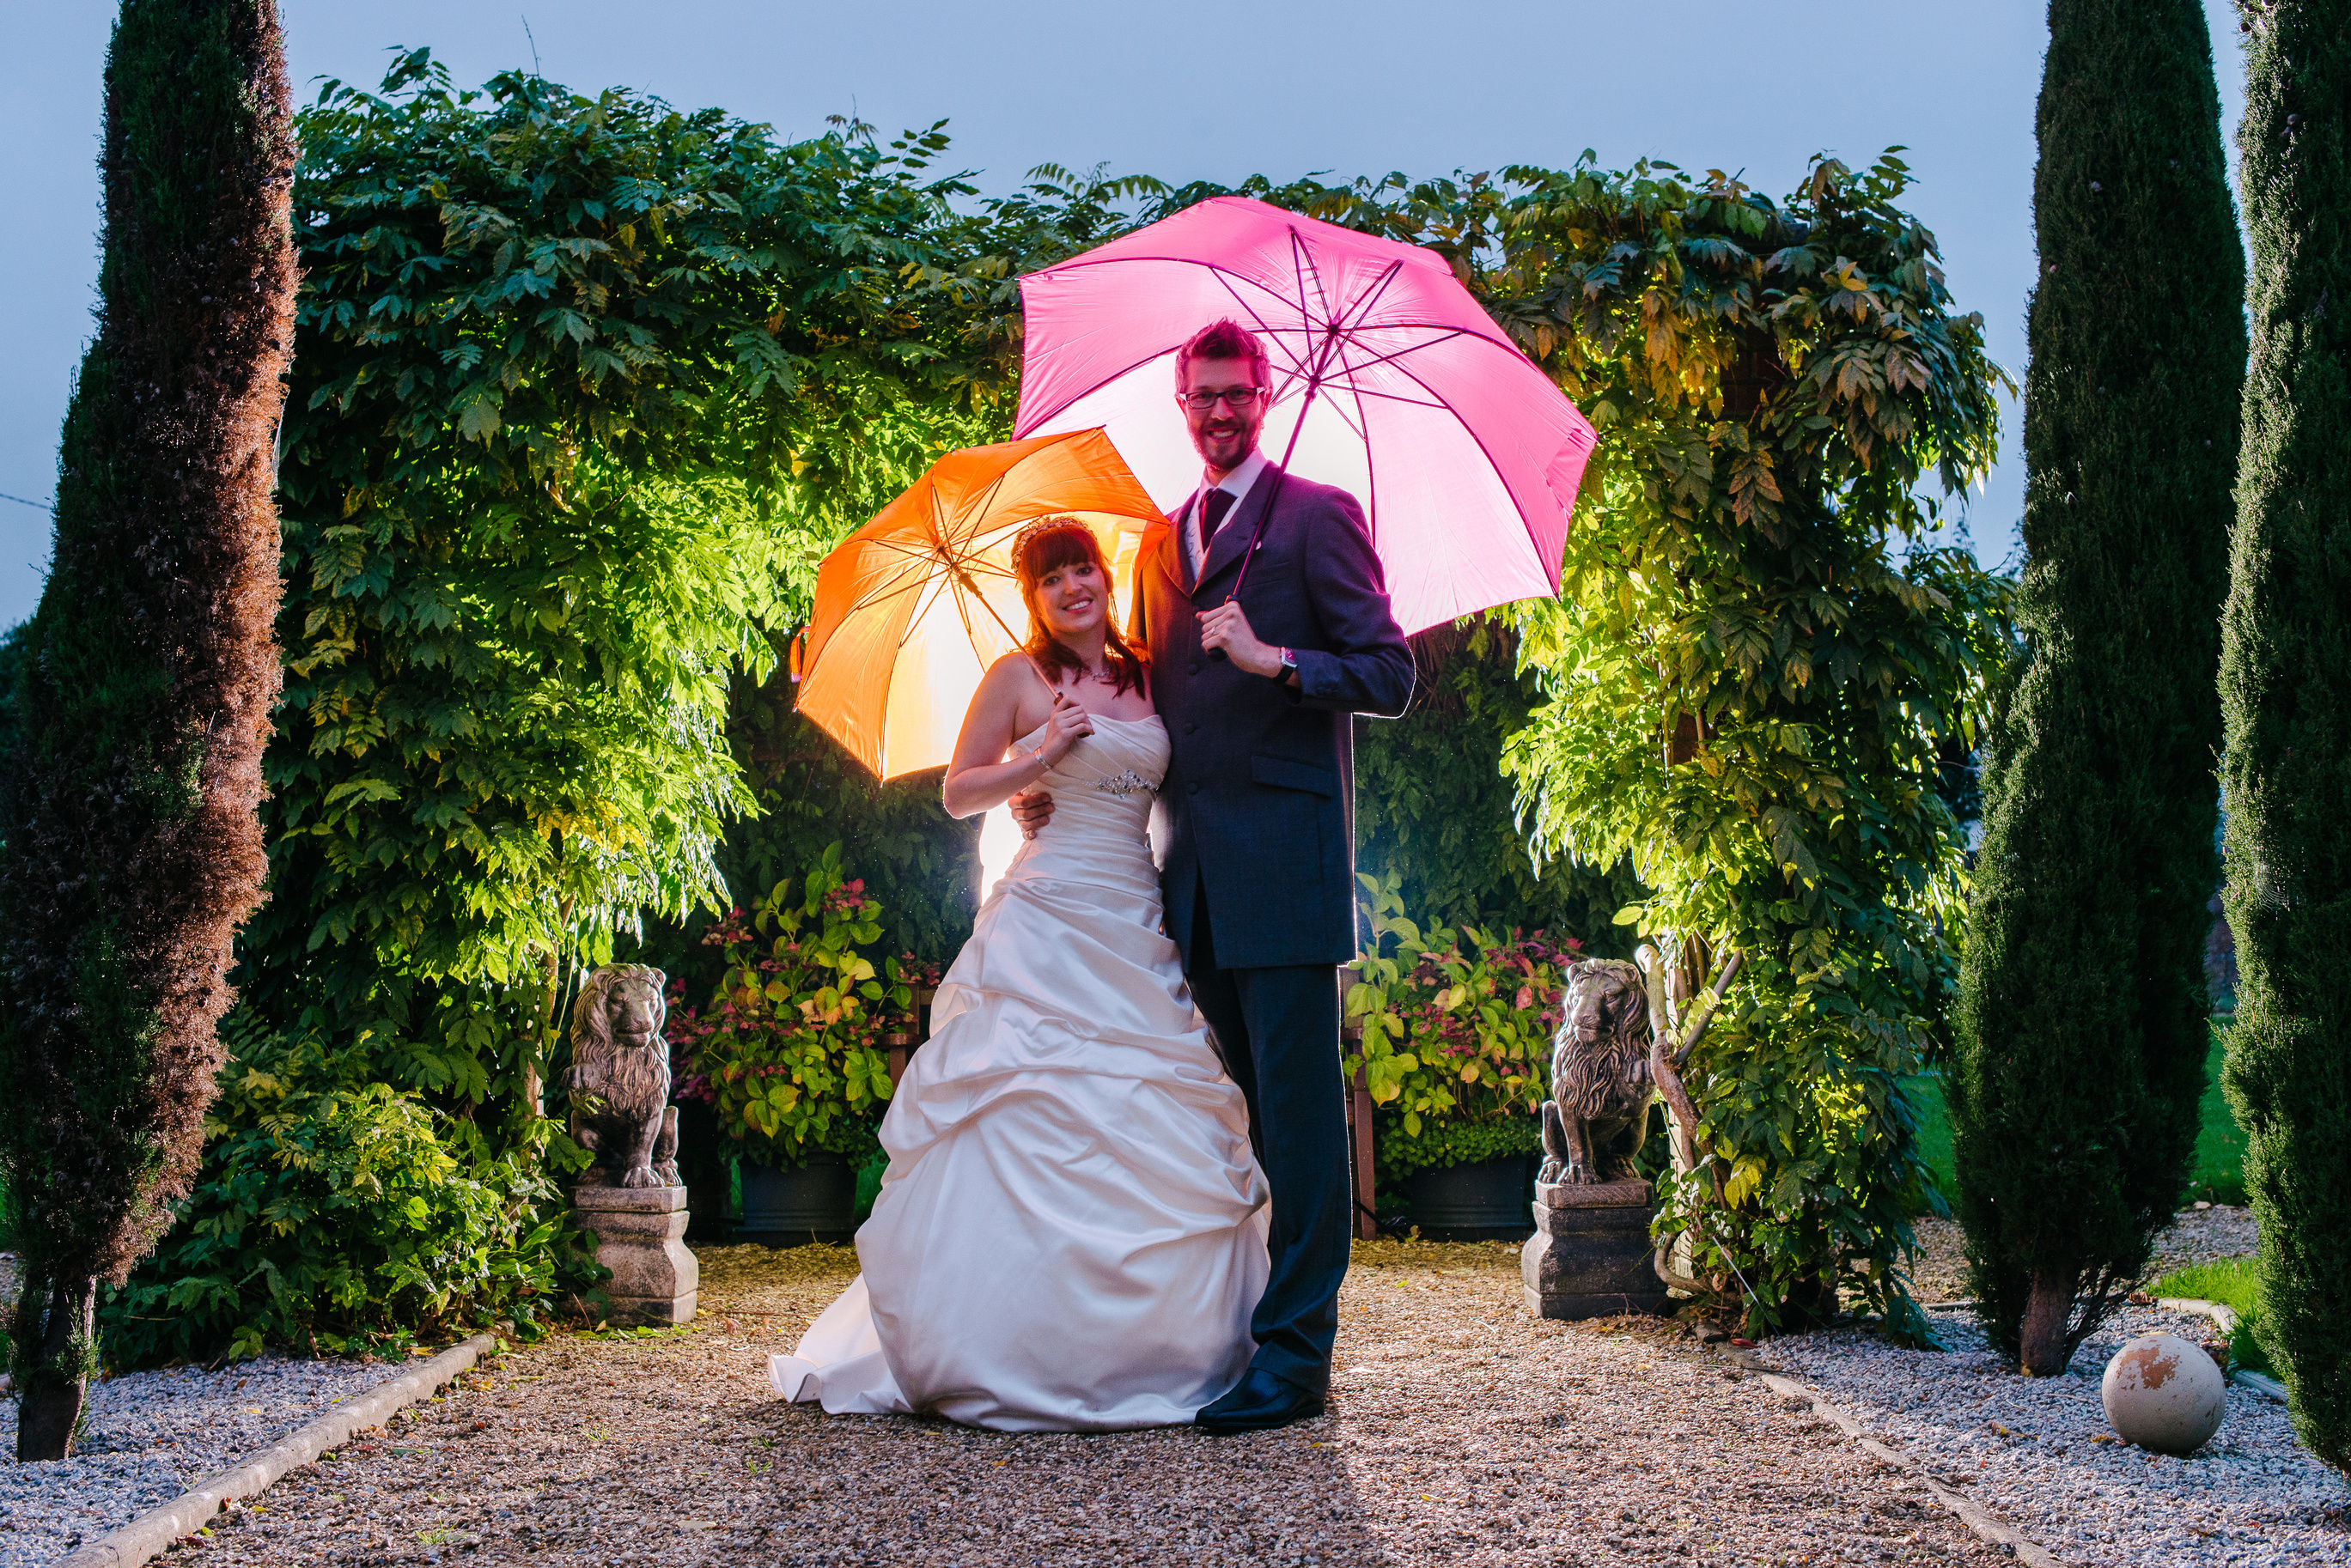 Pergola wedding umbrellas